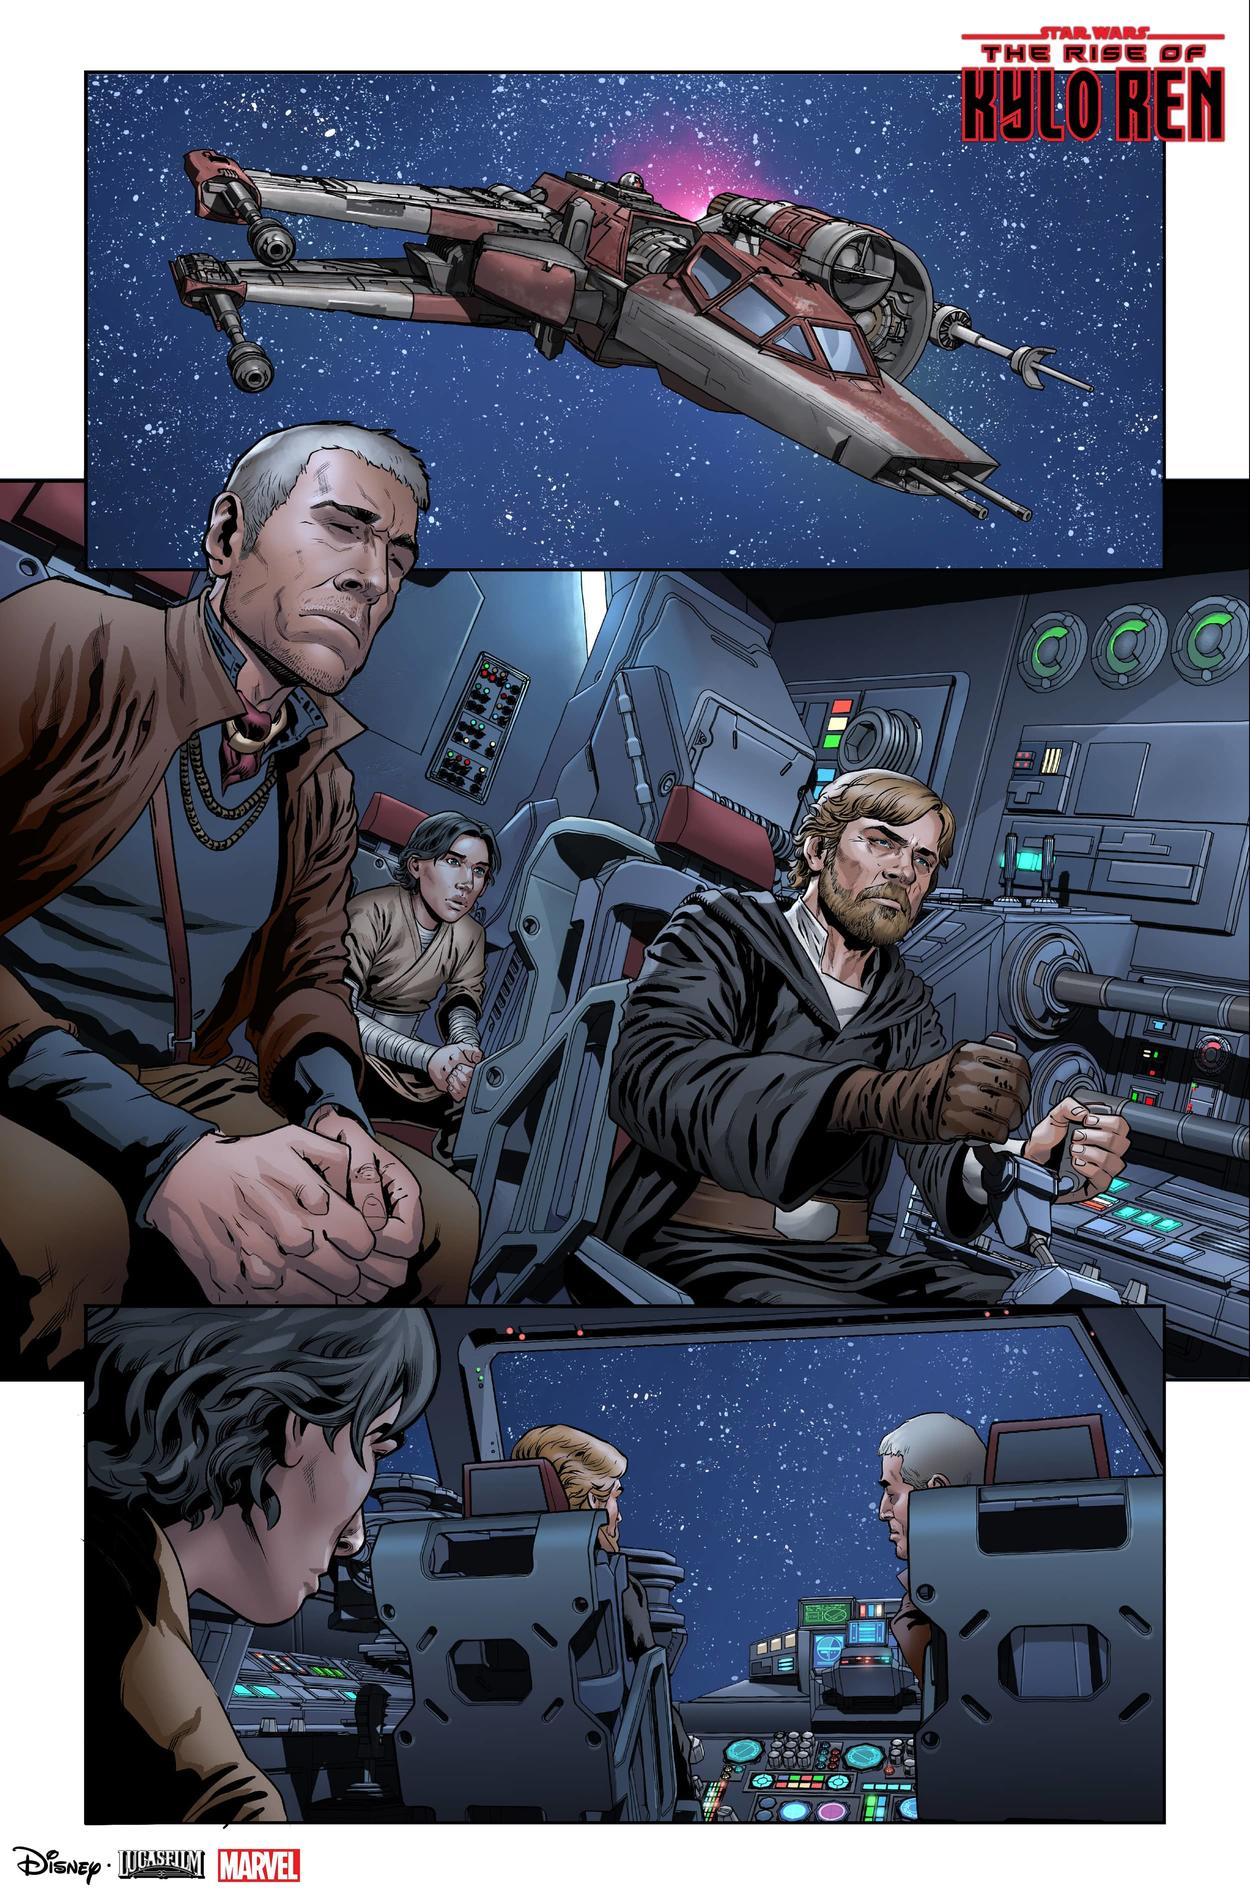 Luke Skywalker, Lor San Tekka and Ben Solo in The Rise of Kylo Ren issue 2